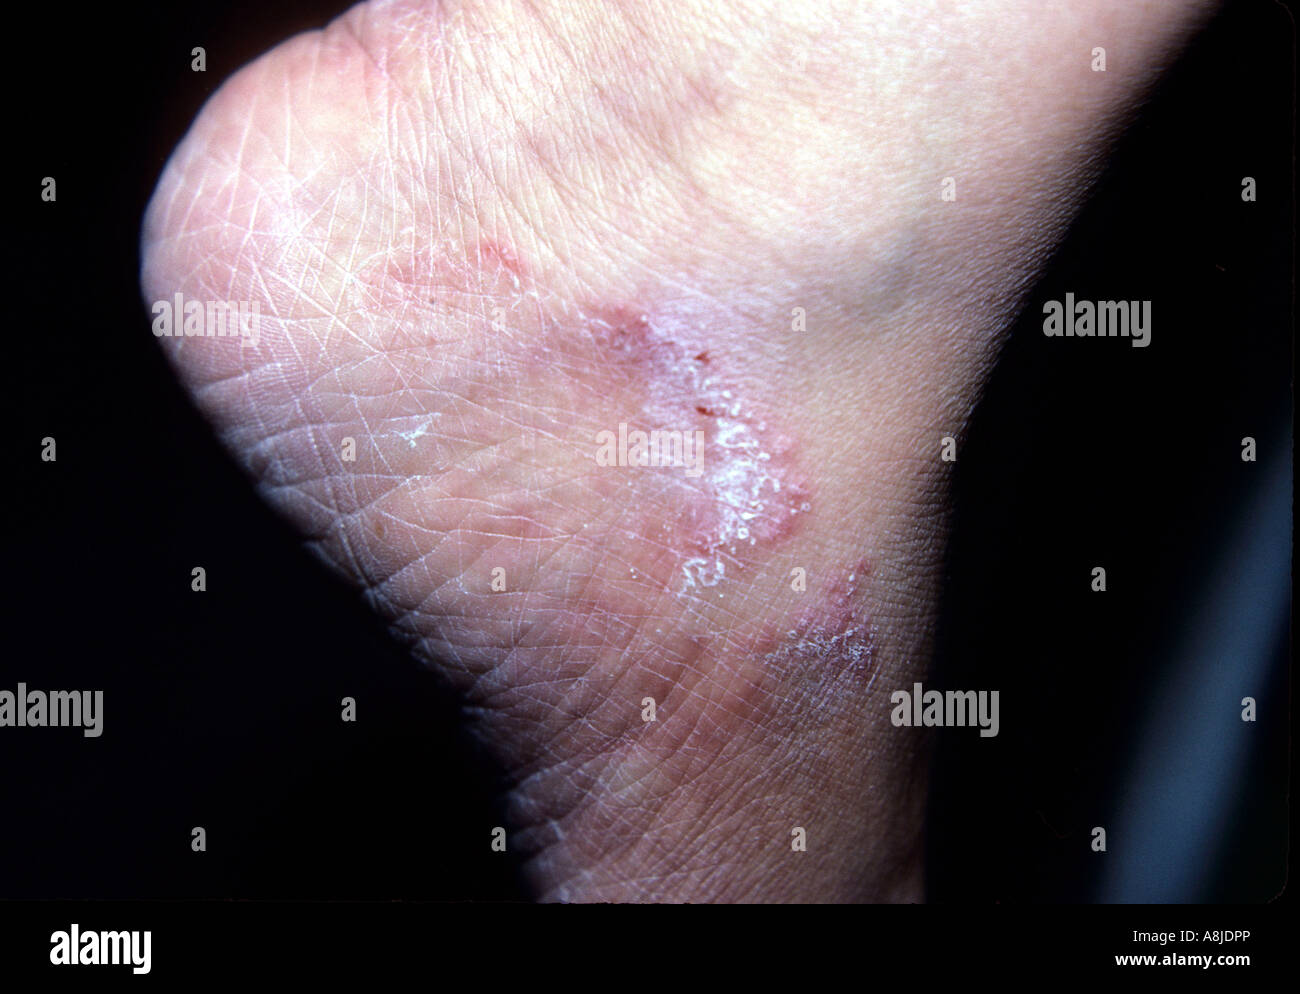 Fungal infection rash (tinea) on patient's ankle. - Stock Image